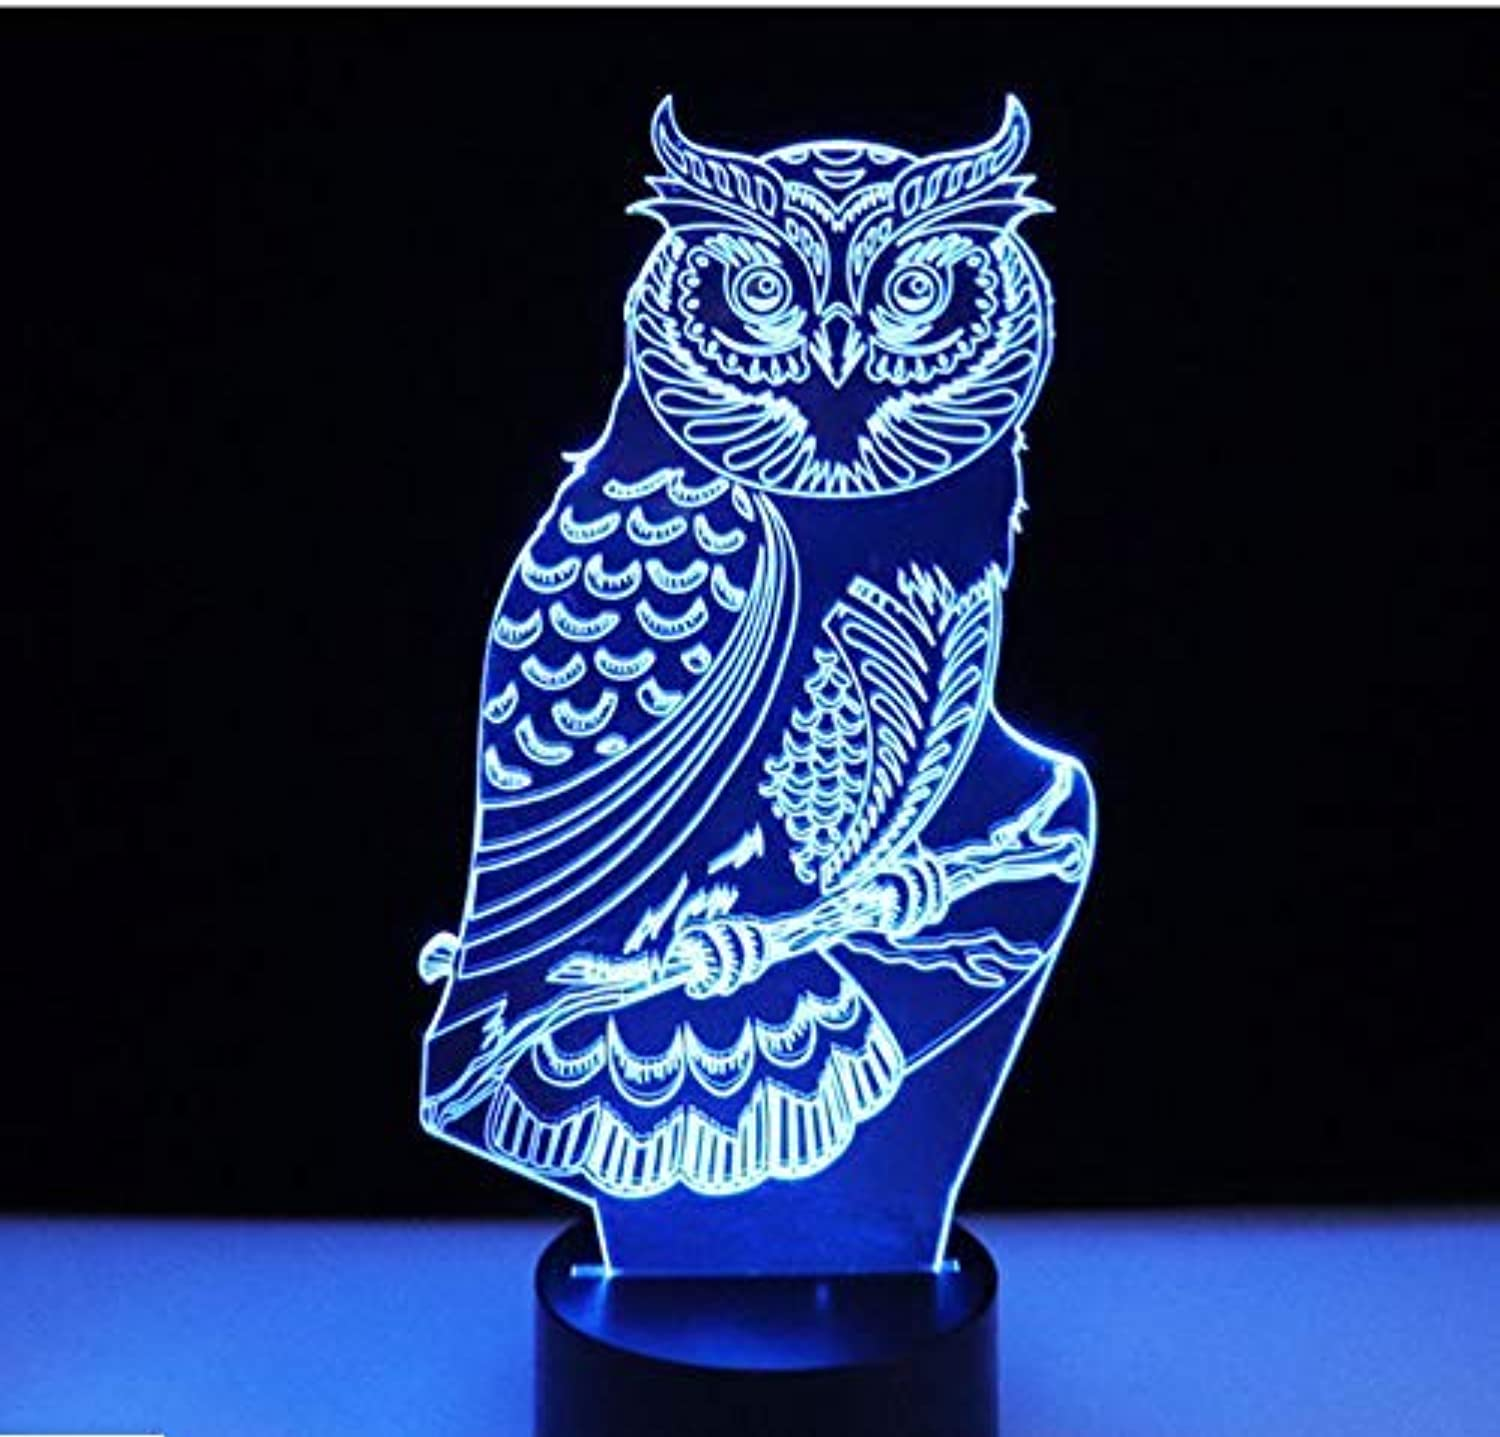 BMY 3D Led Night Lights Spiritual Owl with 7 colors Light for Home Decoration Lamp Amazing Visualization Optical Illusion Awesome